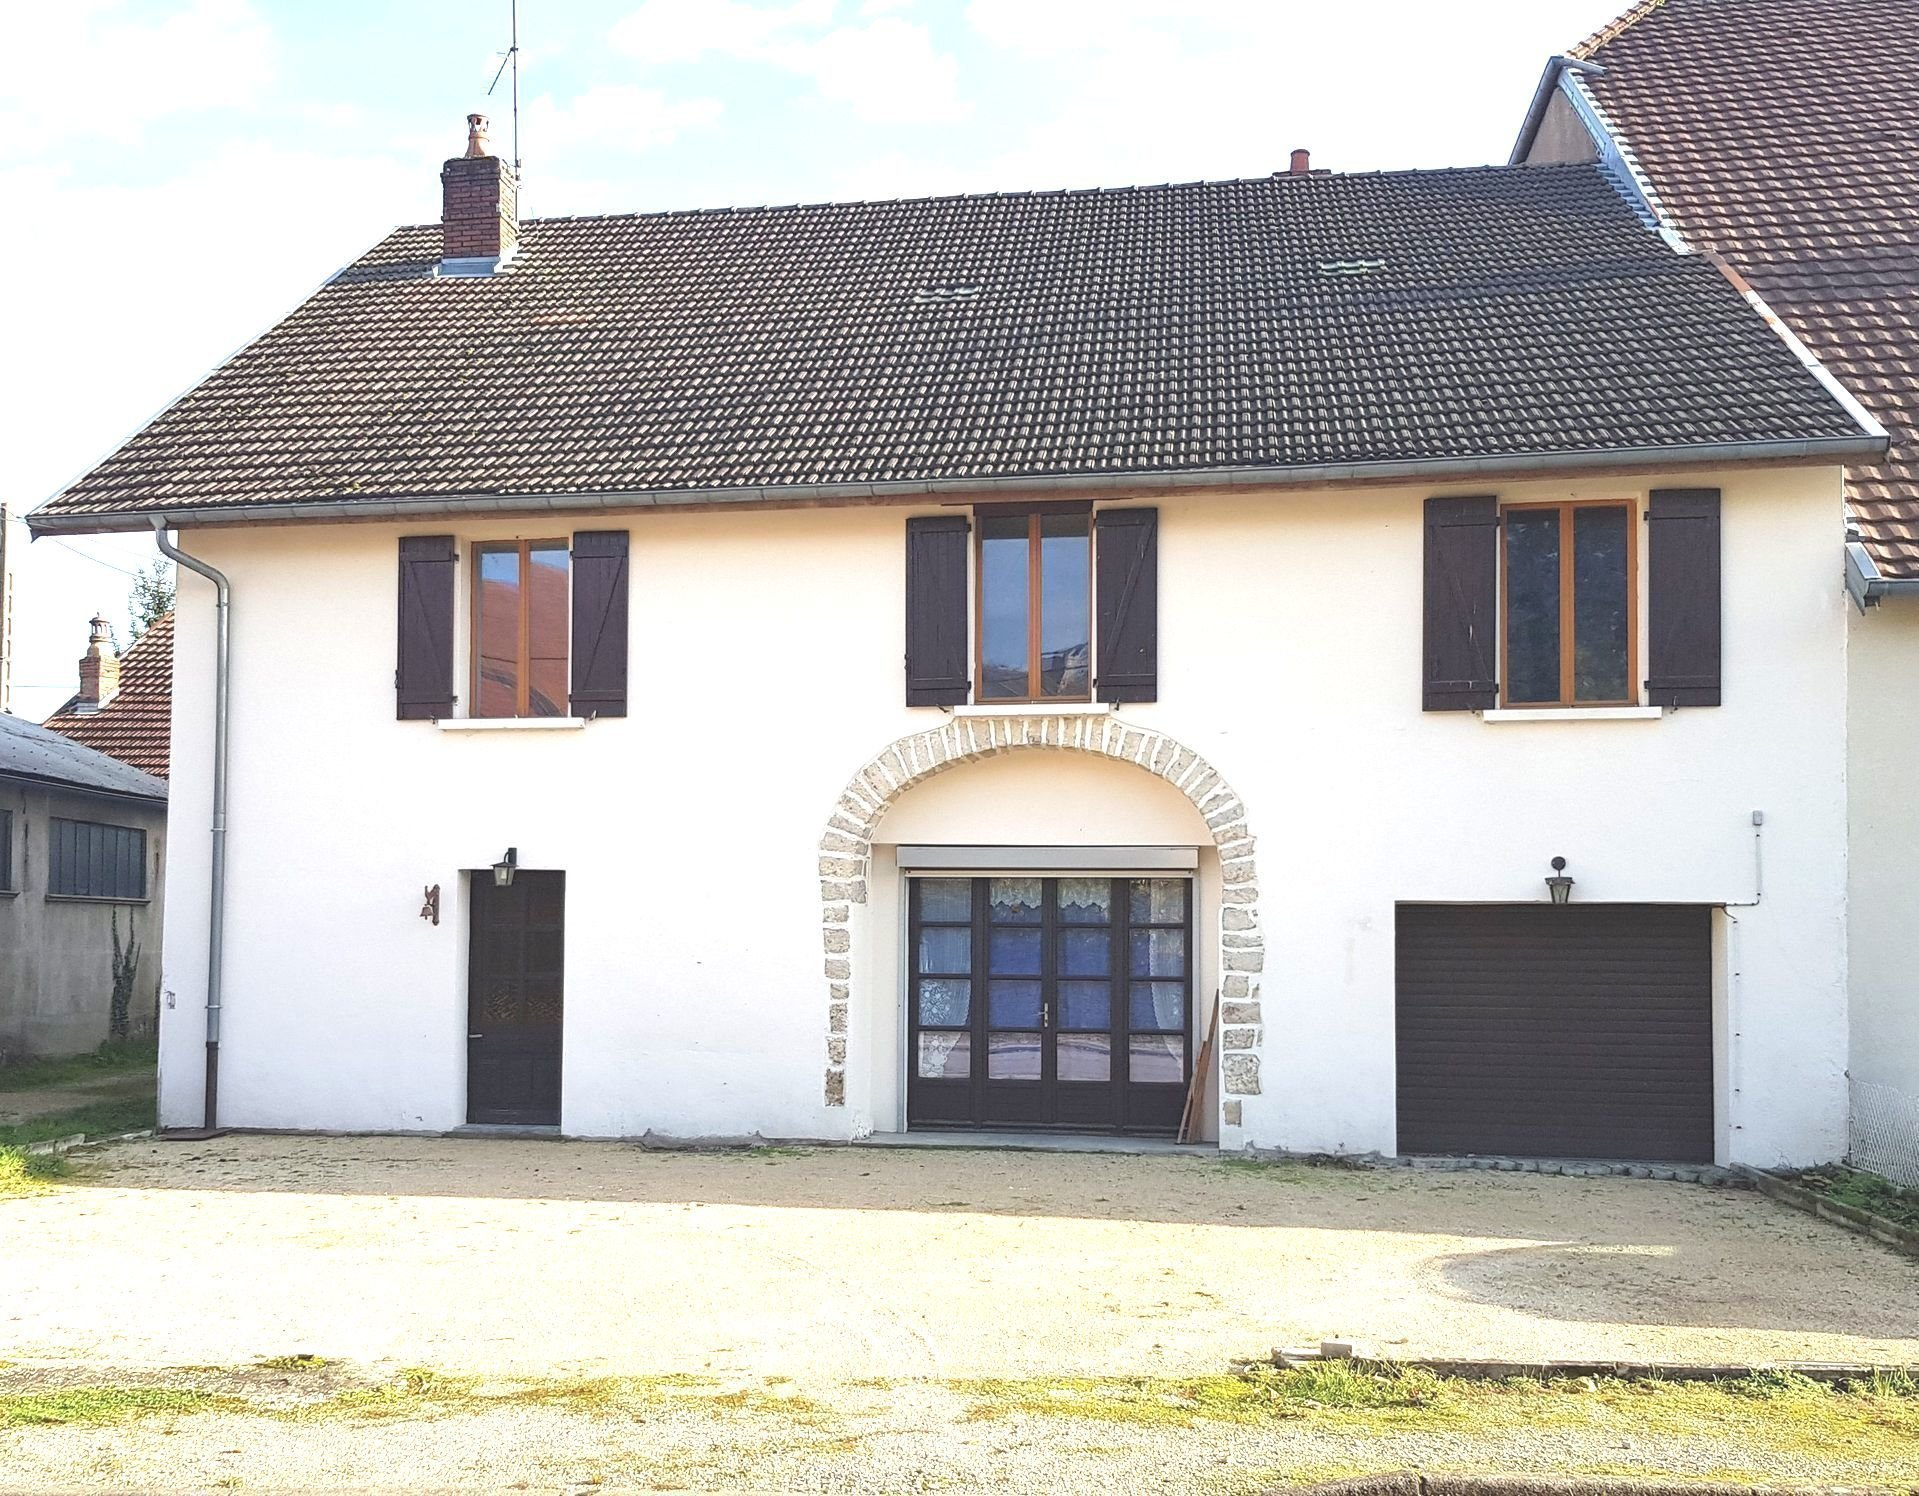 HAUTE-SAÔNE (70), Marnay, Maison T6 A RENOVER